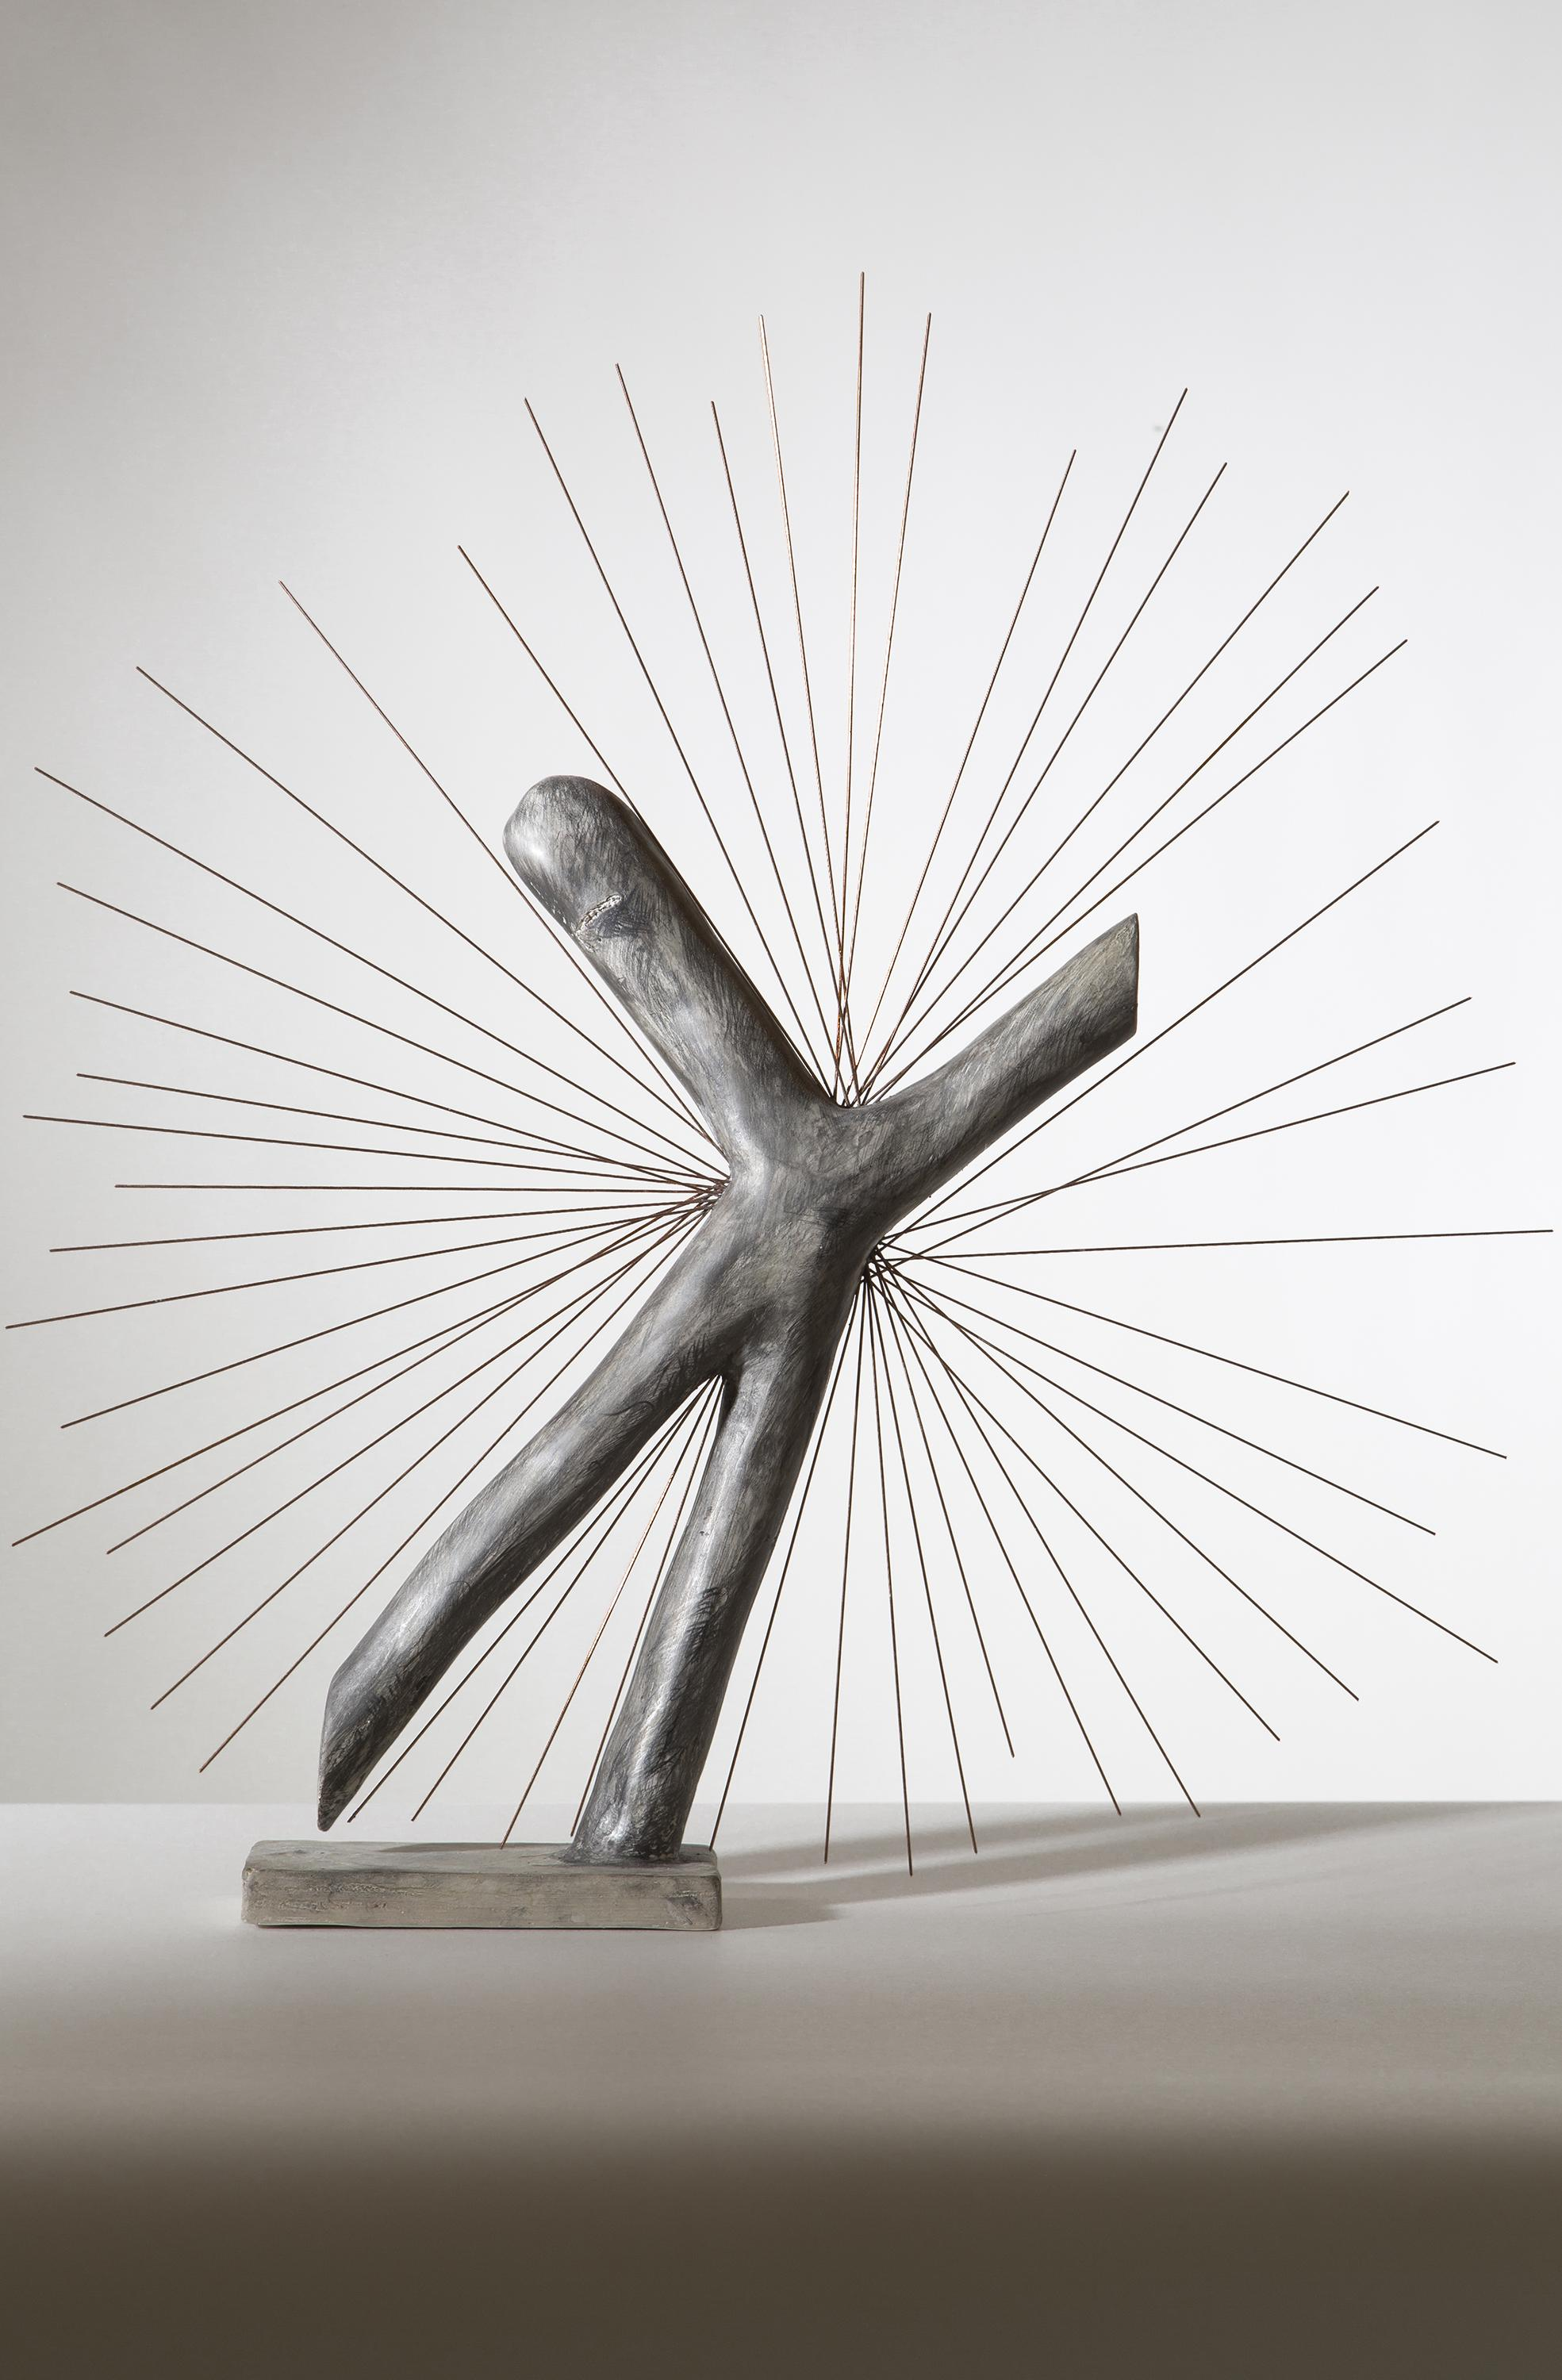 A sculpture shaped like a crooked letter X stands on a short rectangular base. From the center many spokes jut out creating a starburst effect.